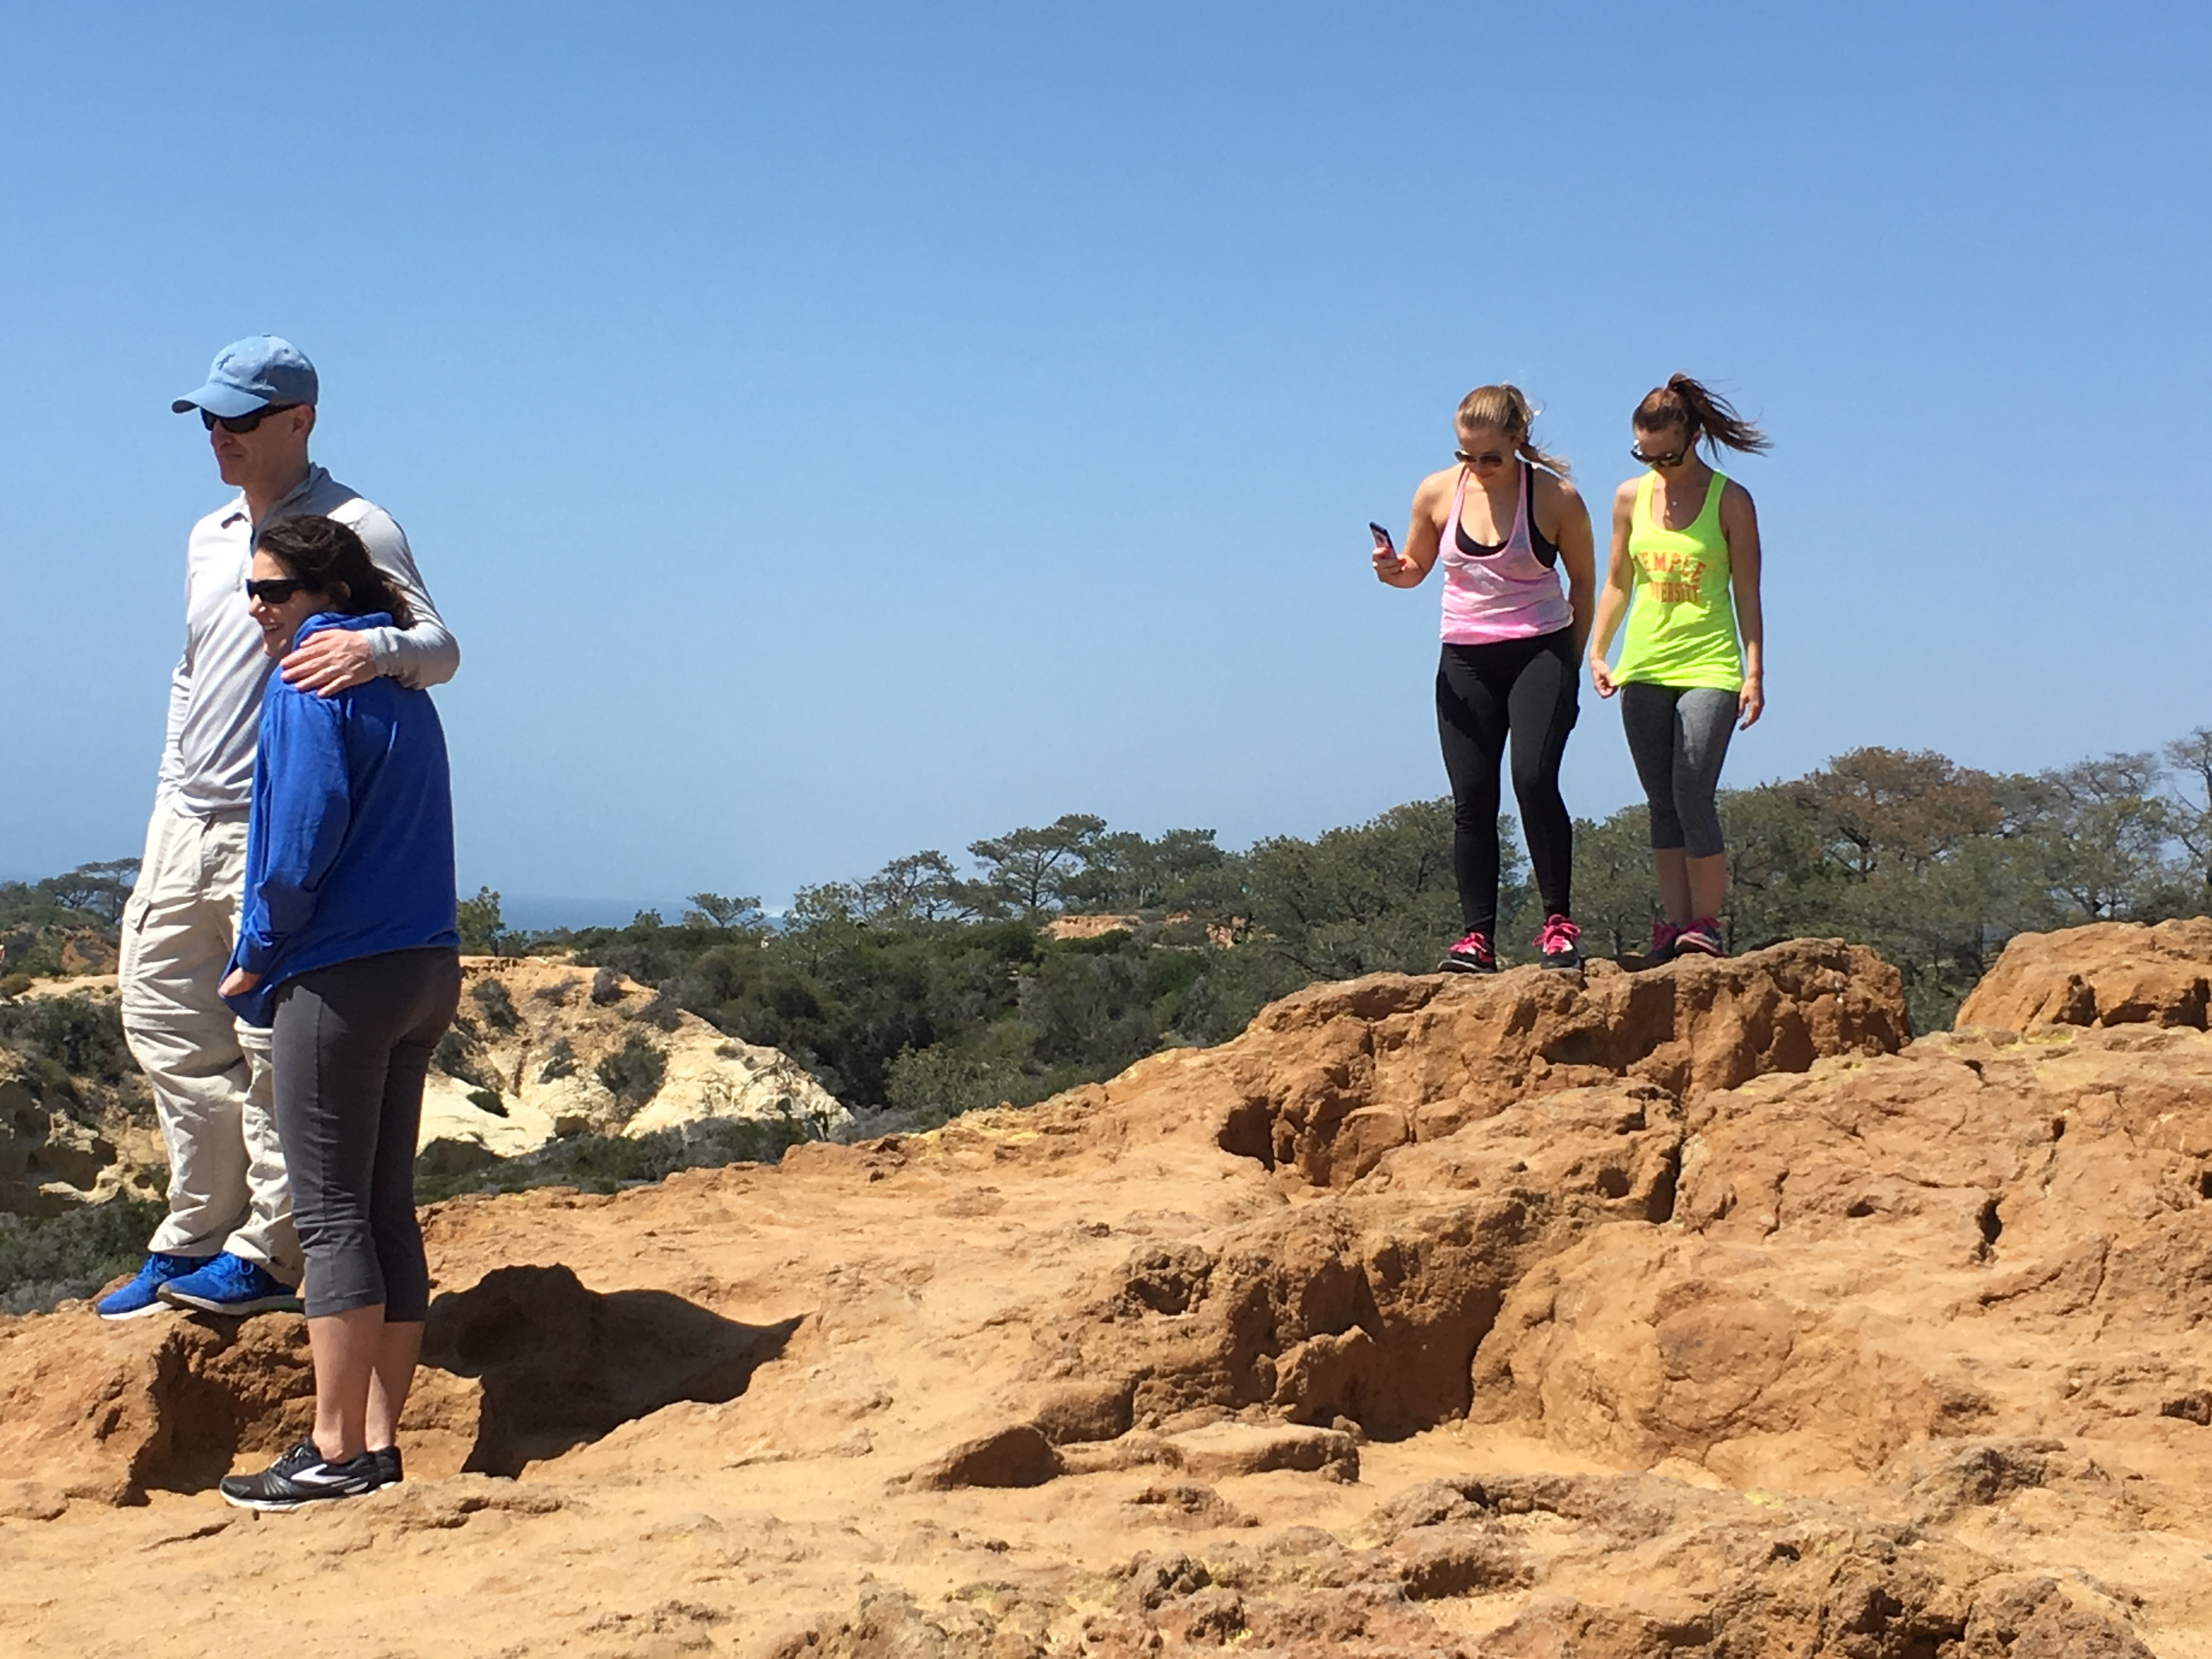 Hiking at Torrey Pines can be hard on the back and knees